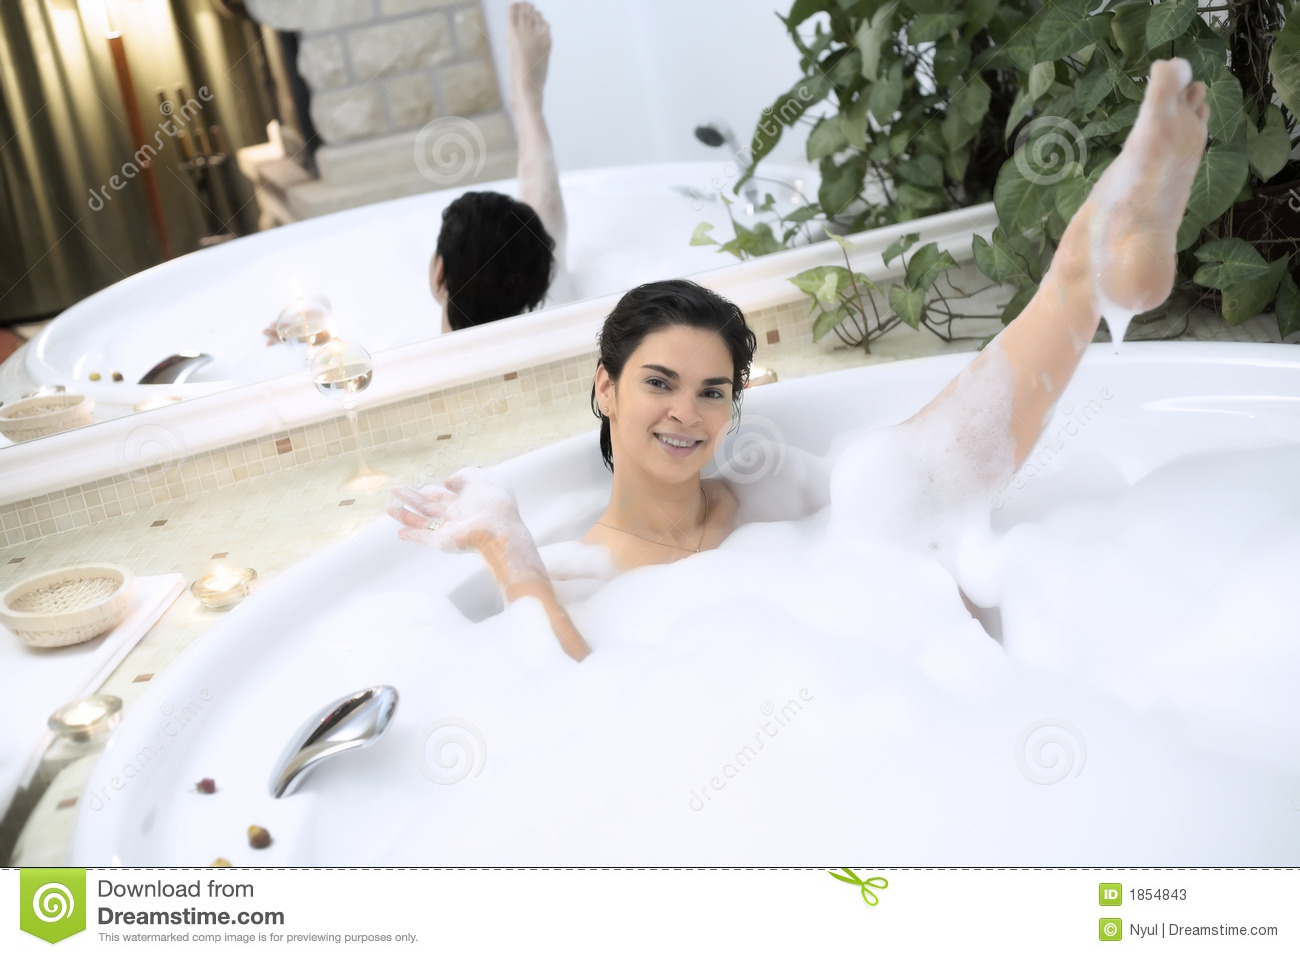 Bath In A Whirlpool Hot Tub Jacuzzi. Stock Image - Image of smile ...